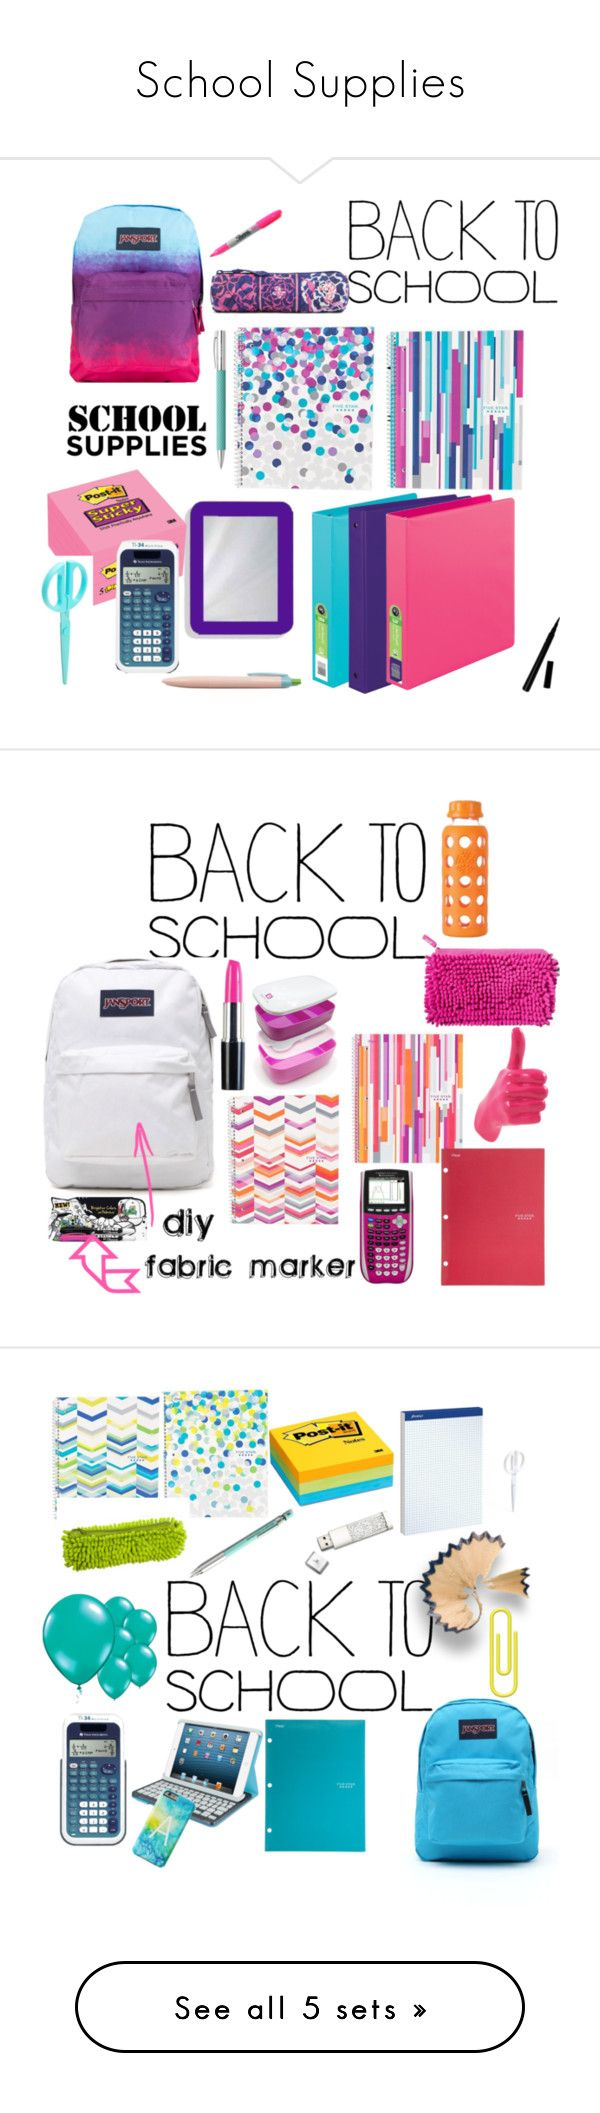 """School Supplies"" by summerloveforever335 ❤ liked on Polyvore featuring interior, interiors, interior design, home, home decor, interior decorating, JanSport, Post-It, Sharpie and Vera Bradley"